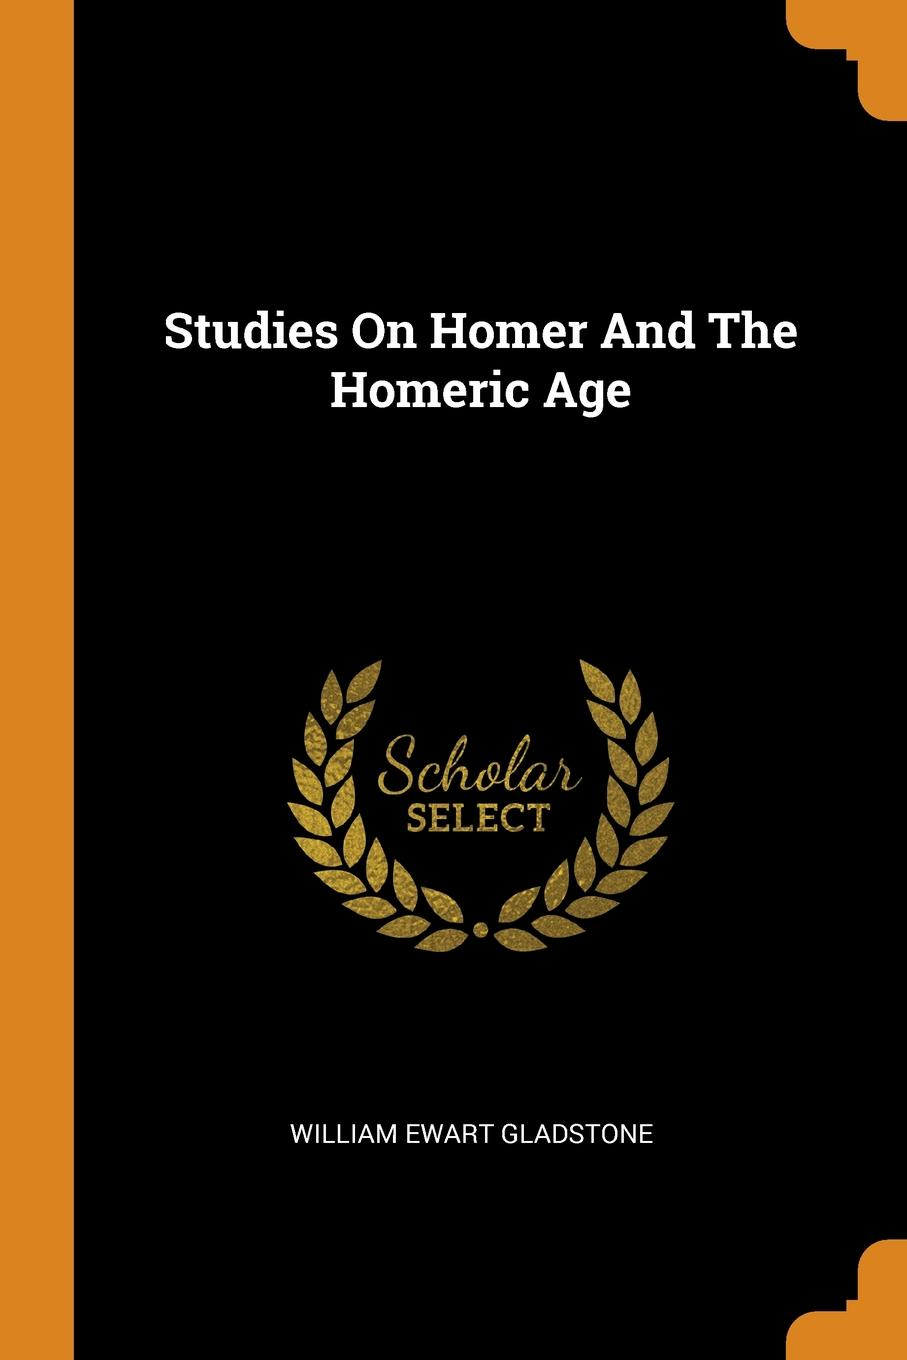 William Ewart Gladstone Studies On Homer And The Homeric Age gladstone william ewart studies on homer and the homeric age vol 3 of 3